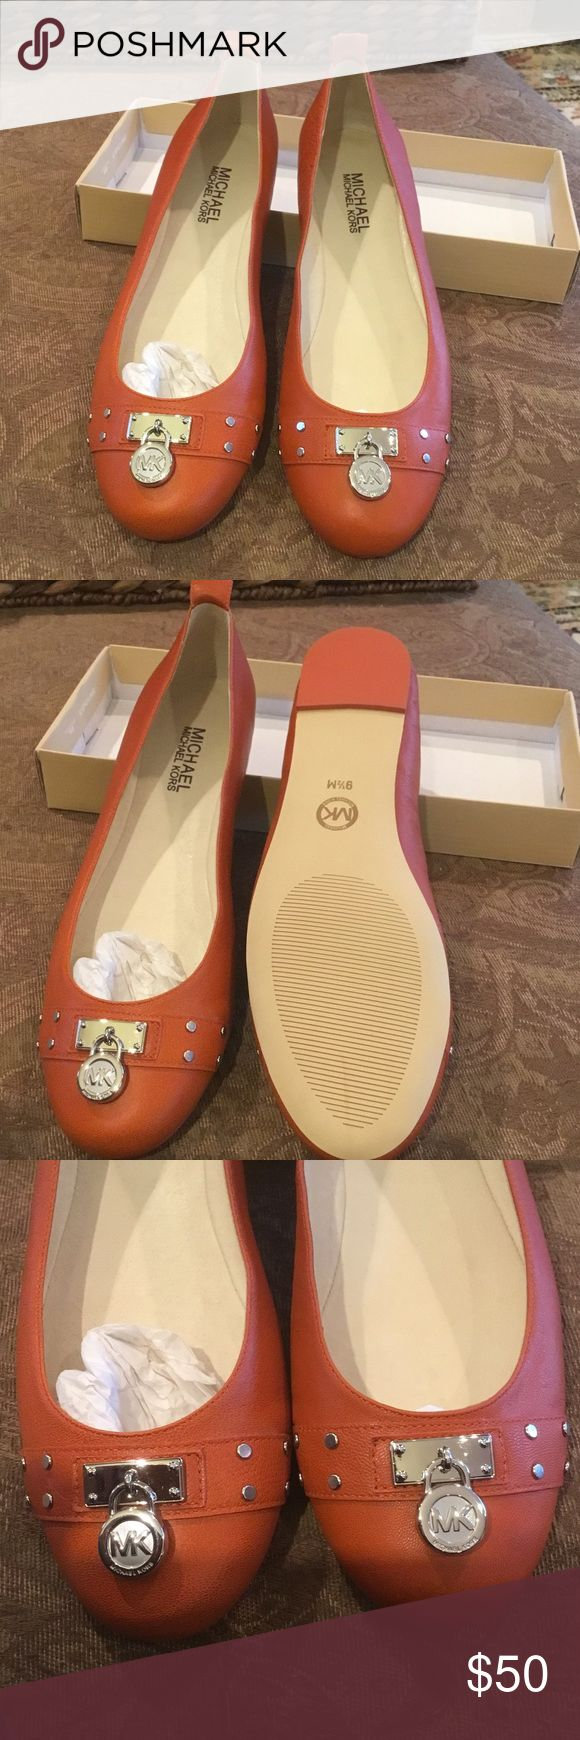 Michael Kors Hamilton Studs NWT New Never Worn Michael Kors Hamilton Stud Flats KORS Michael Kors Shoes Flats & Loafers